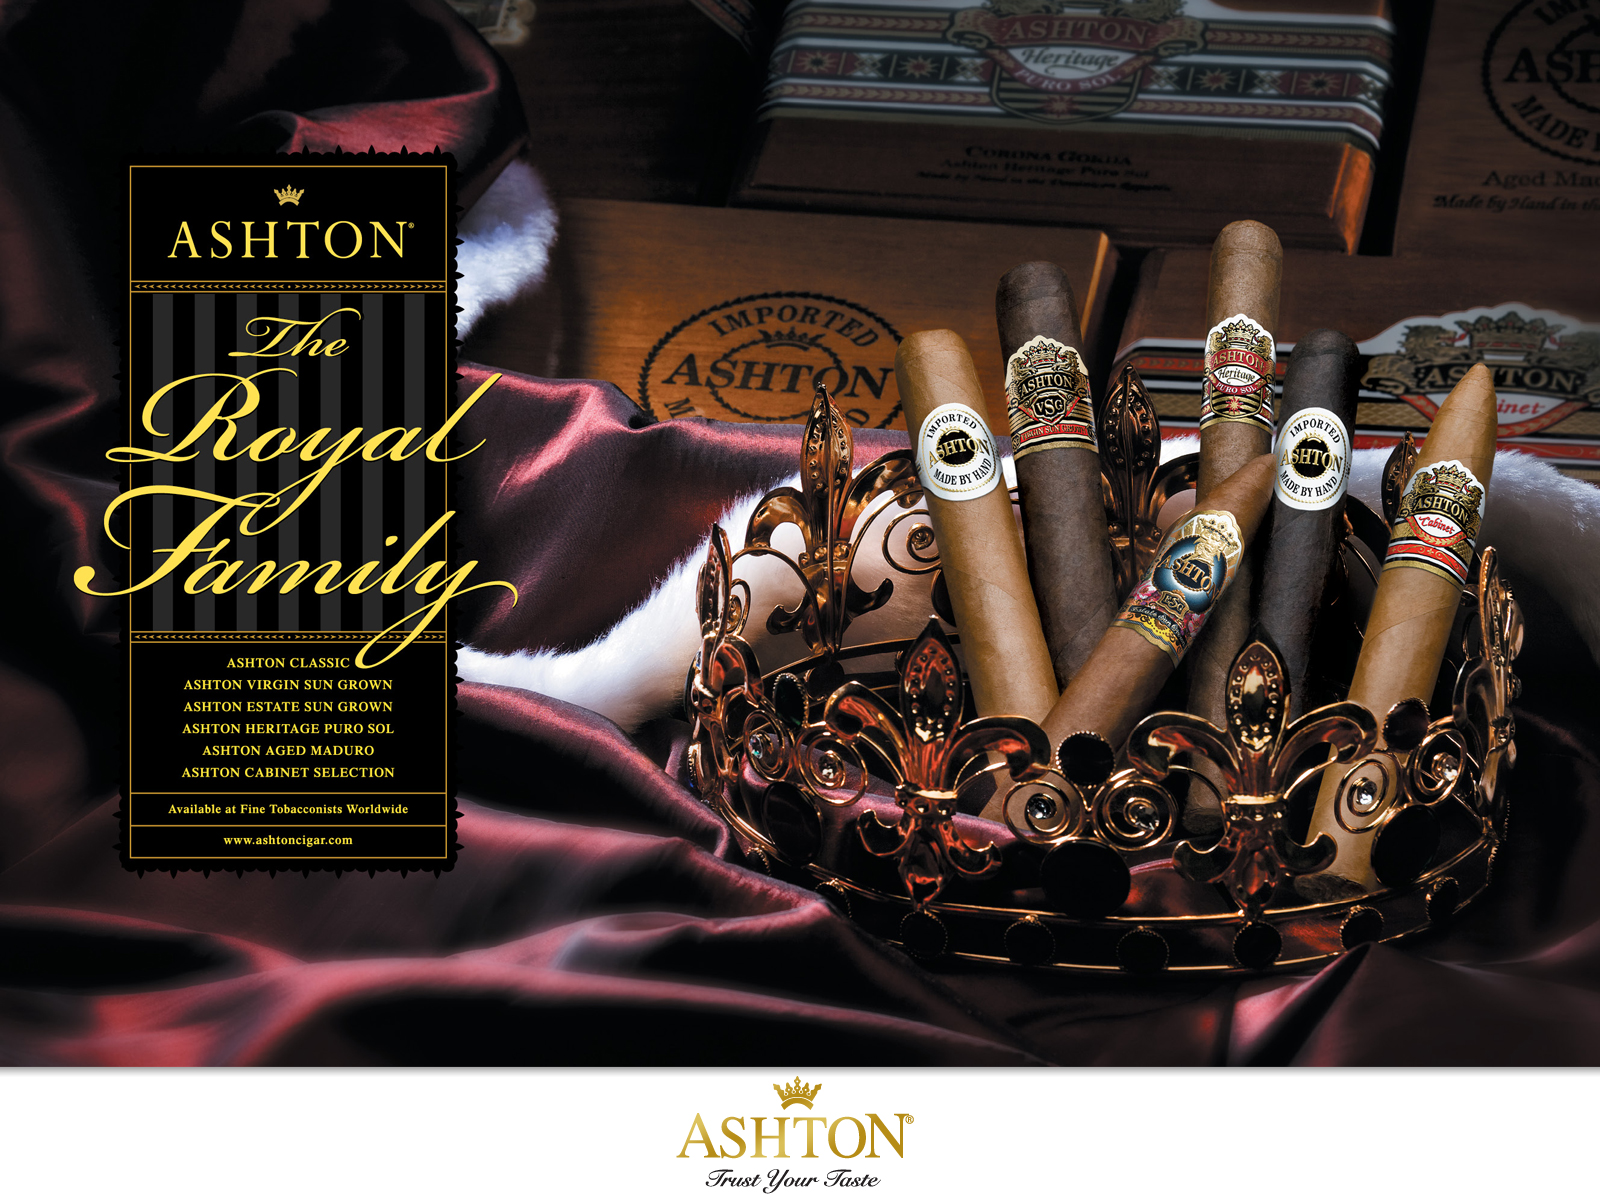 ashton_cigars_advertising_campaign_cigarmonkeys_1.jpg